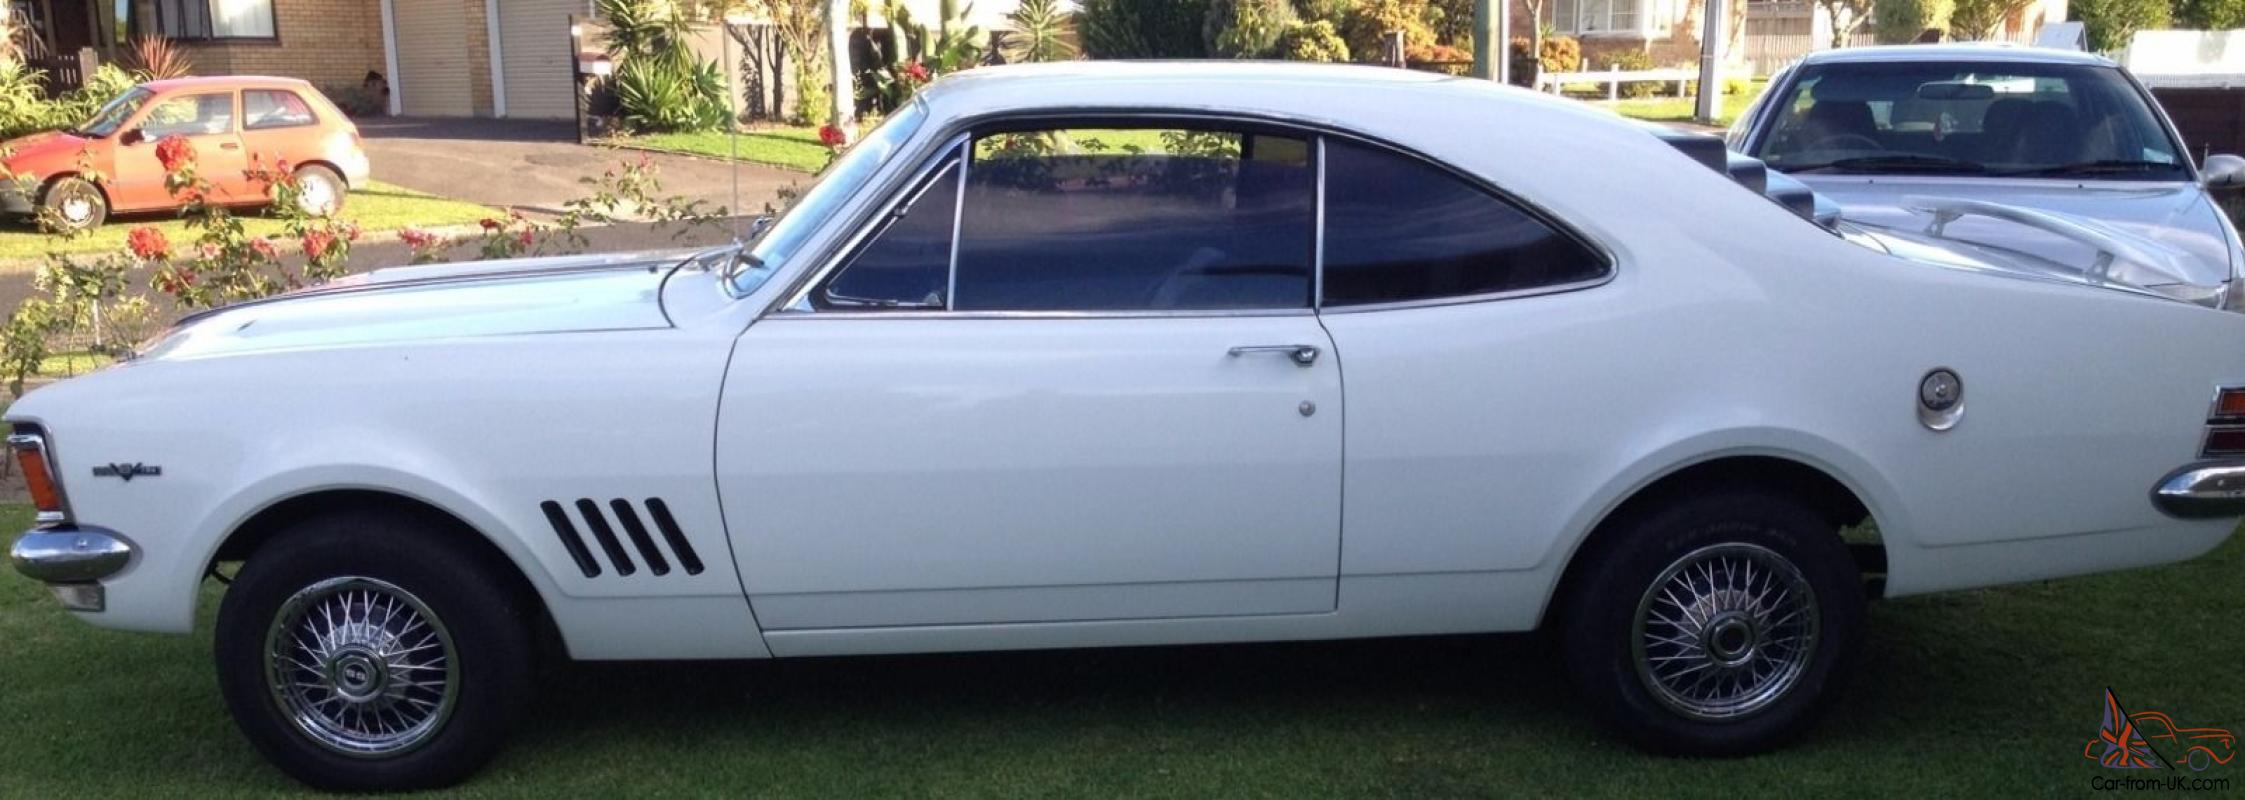 1972 chevrolet ss monaro out of africa